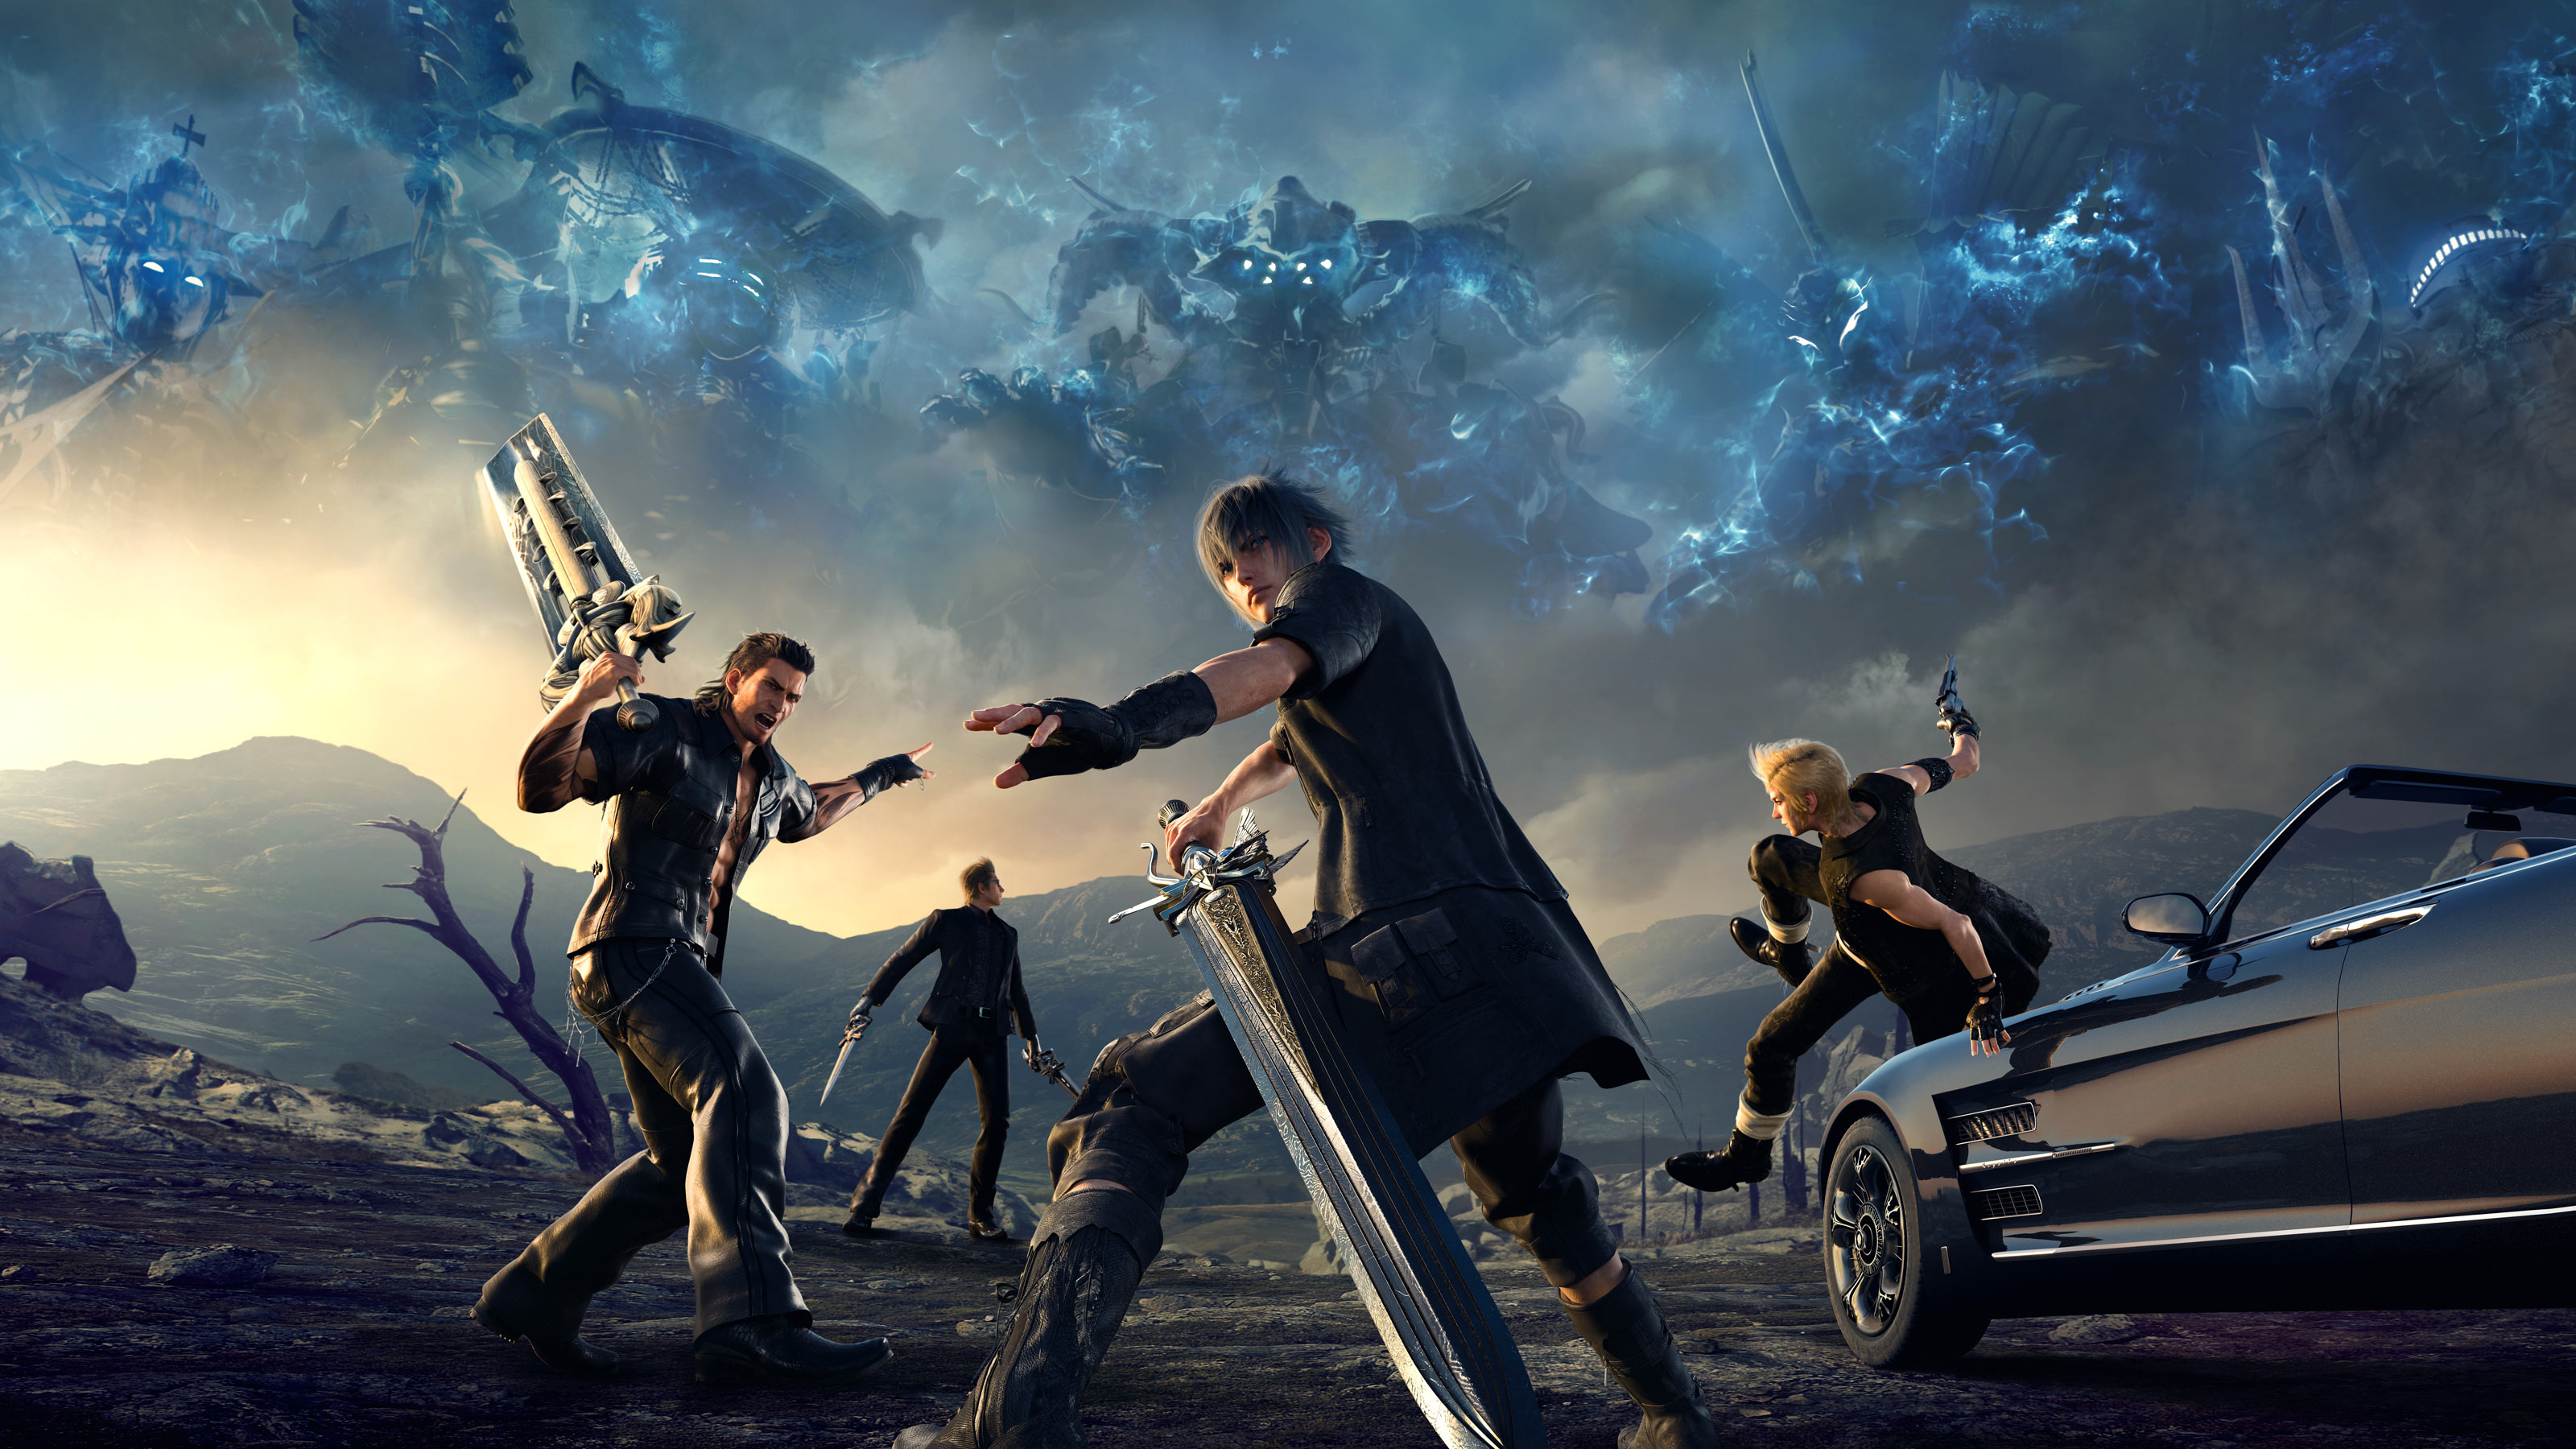 Final Fantasy Wallpapers 87 Background Pictures: Final Fantasy XV HD Wallpaper